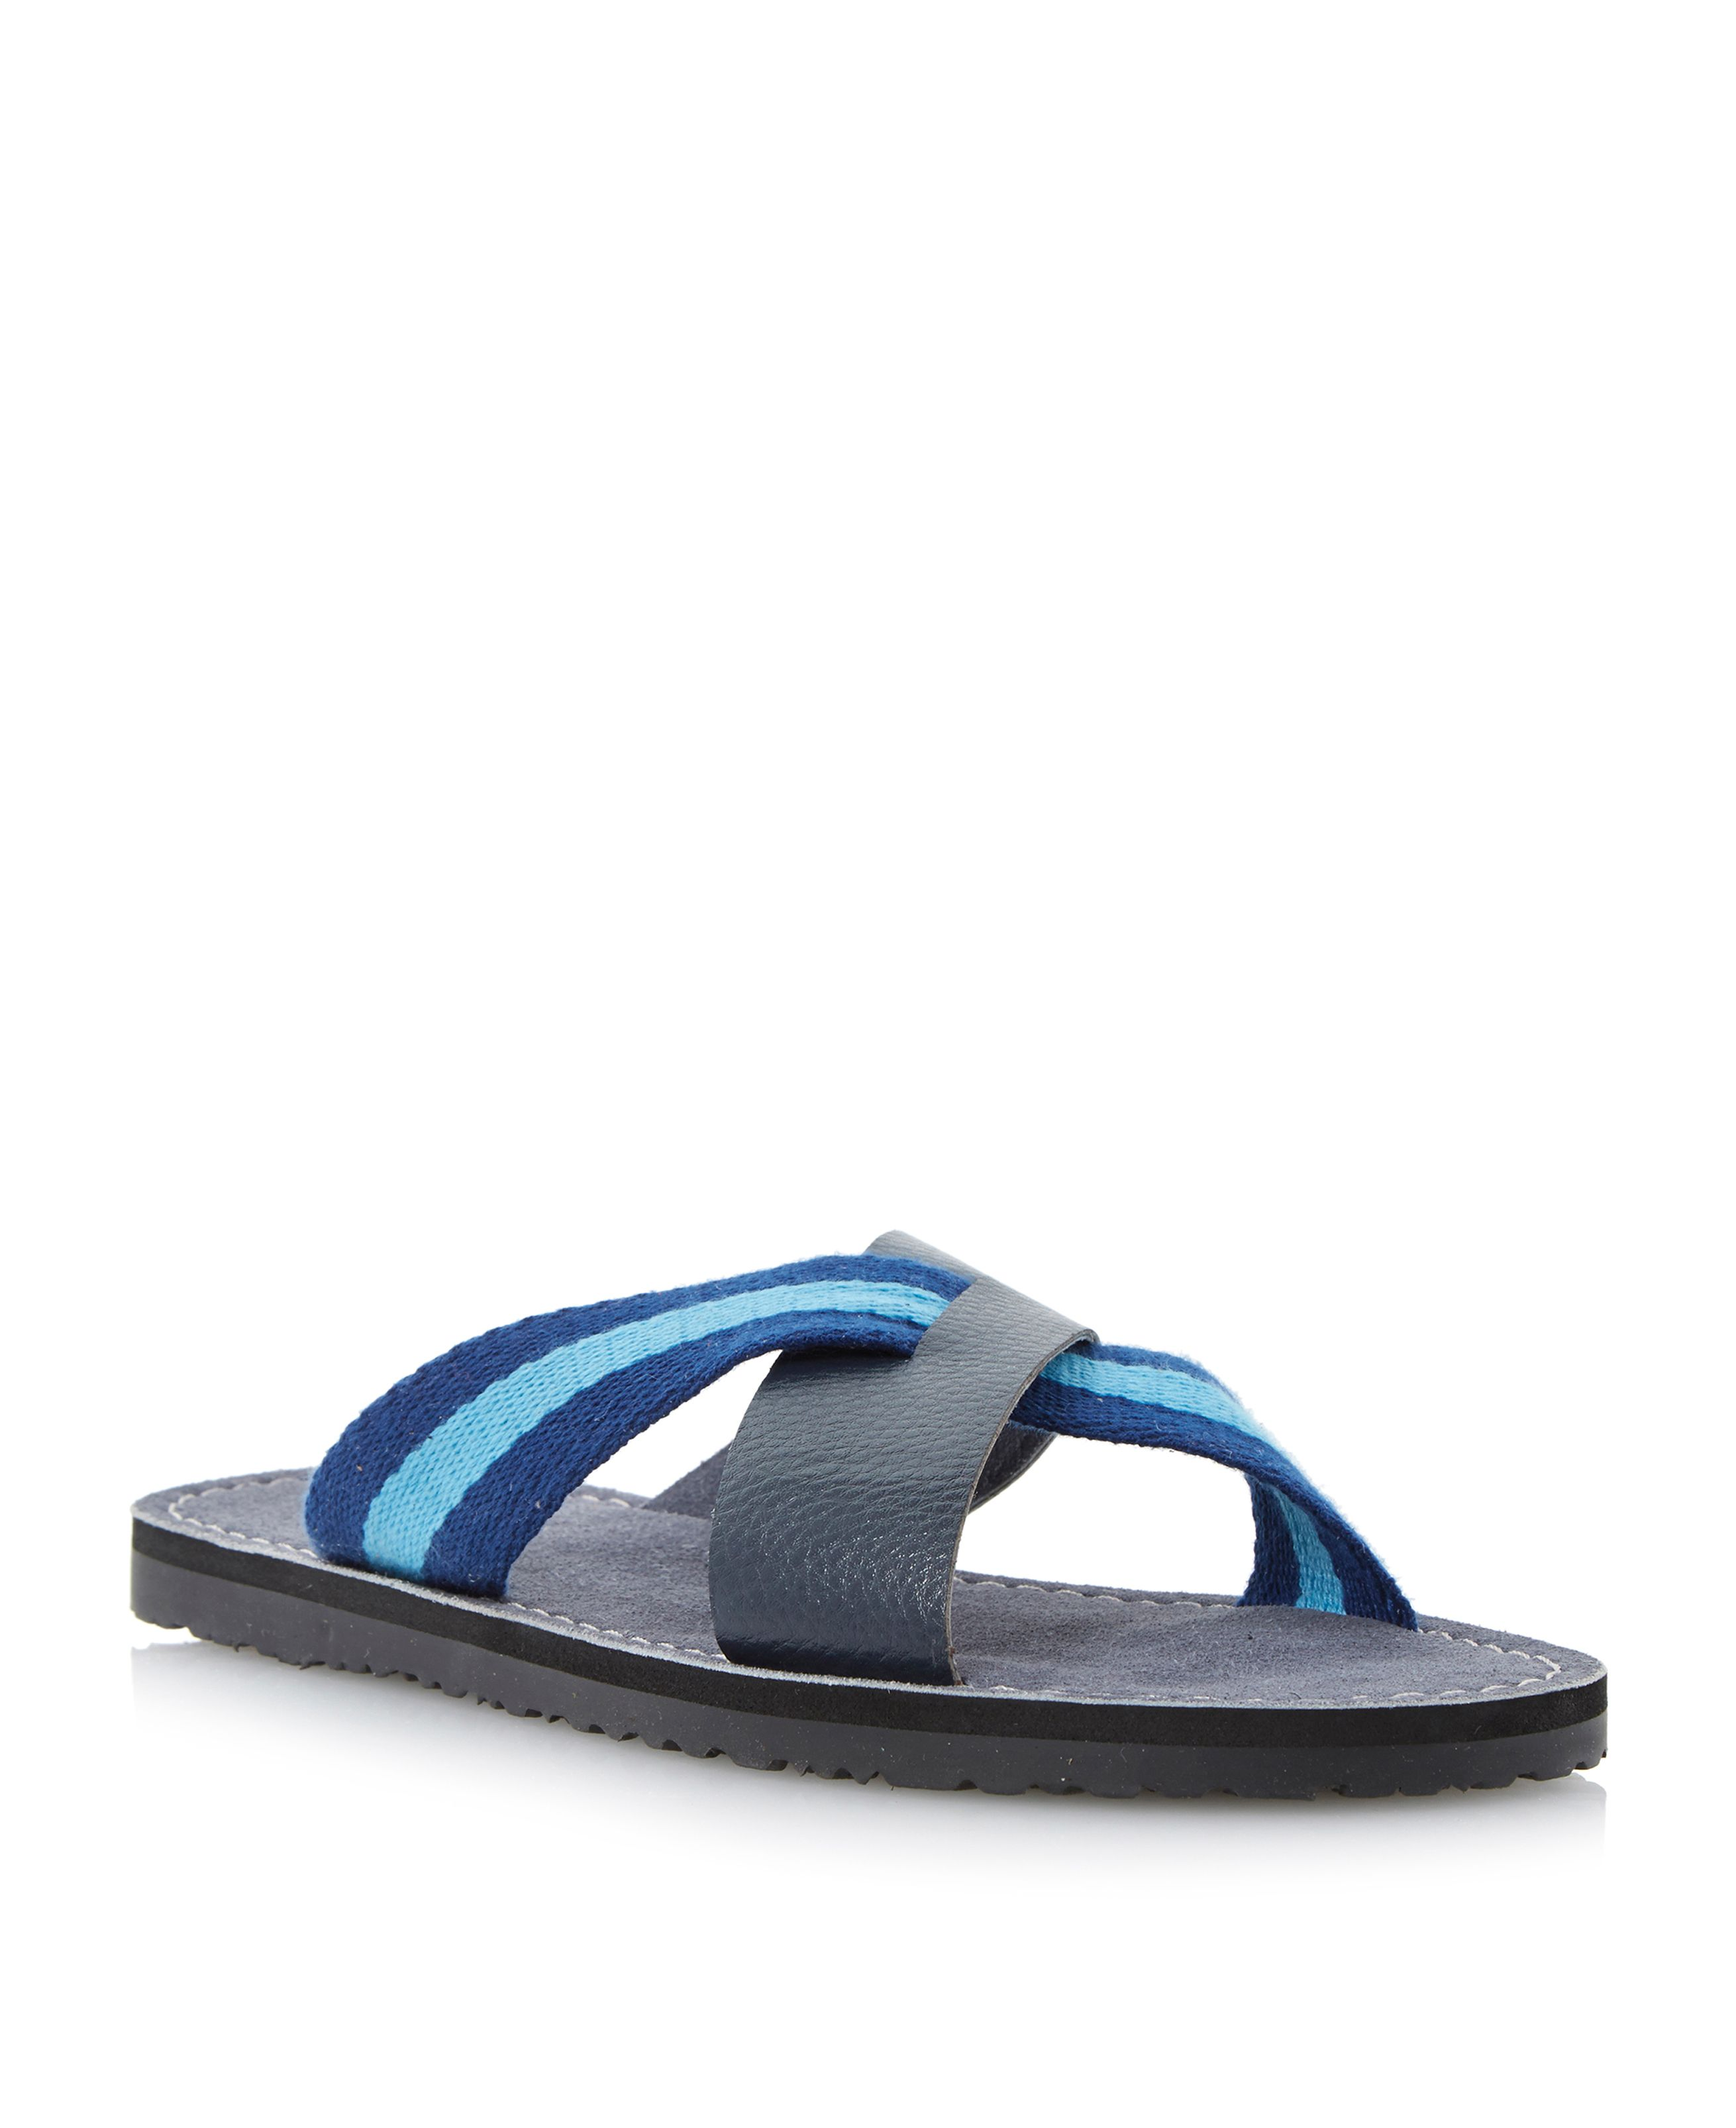 Indiana soft stripe cross sandals